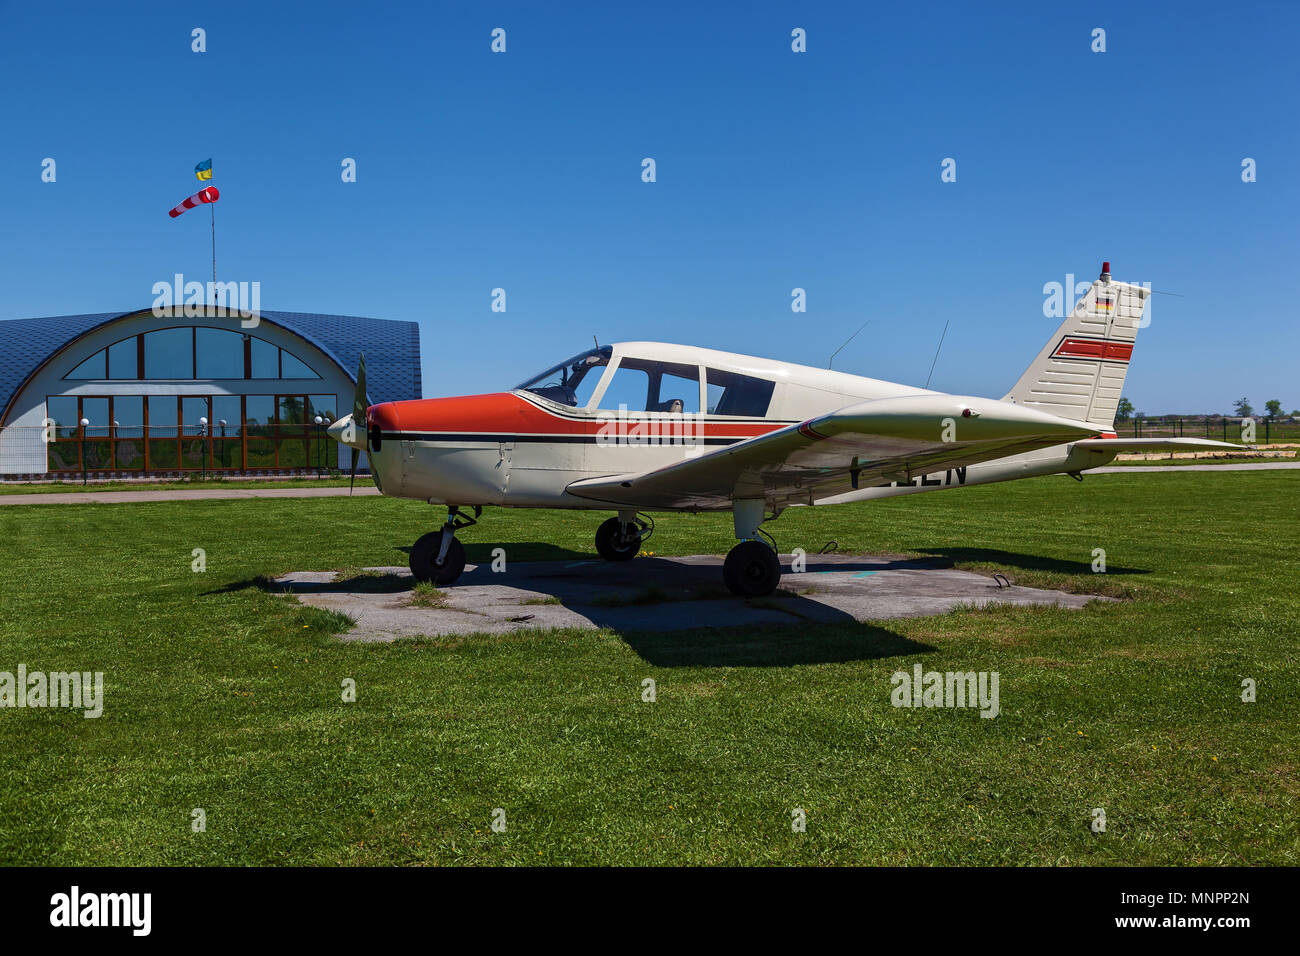 The plane Piper Cherokee stands on the green grass on a